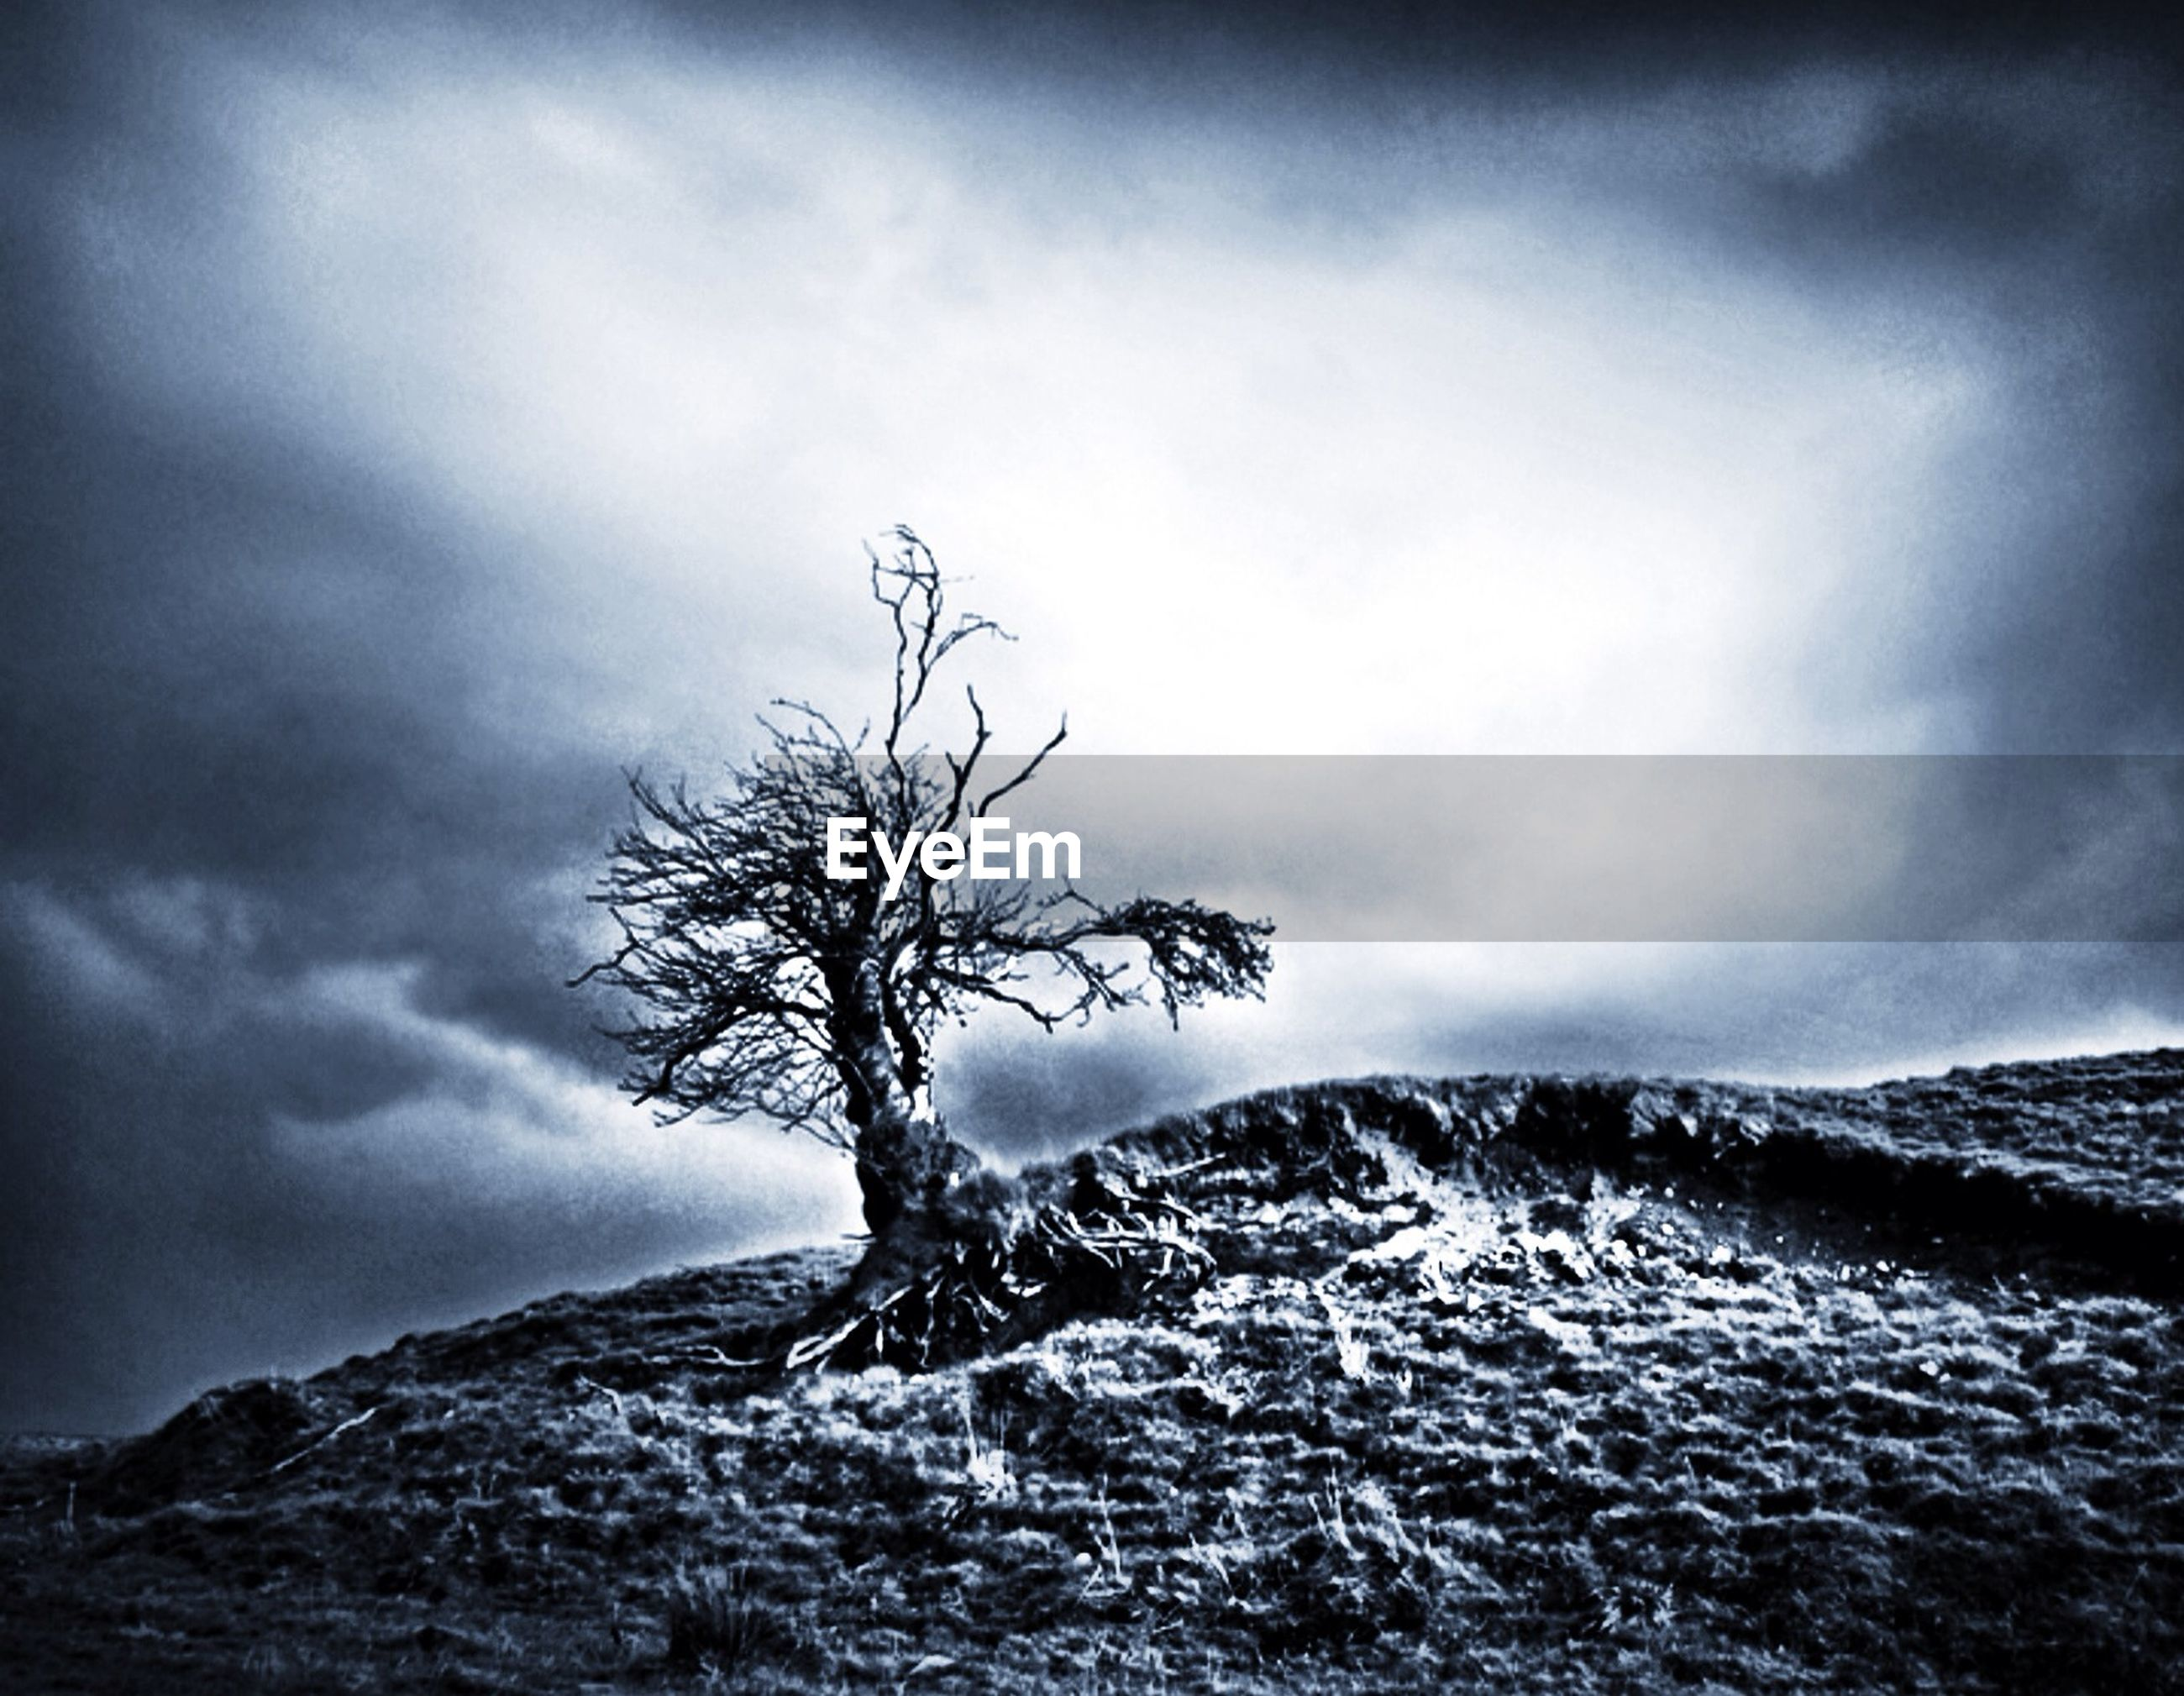 sky, tranquil scene, cloud - sky, tranquility, scenics, mountain, beauty in nature, nature, cloudy, water, bare tree, tree, cloud, weather, rock - object, non-urban scene, low angle view, day, branch, idyllic